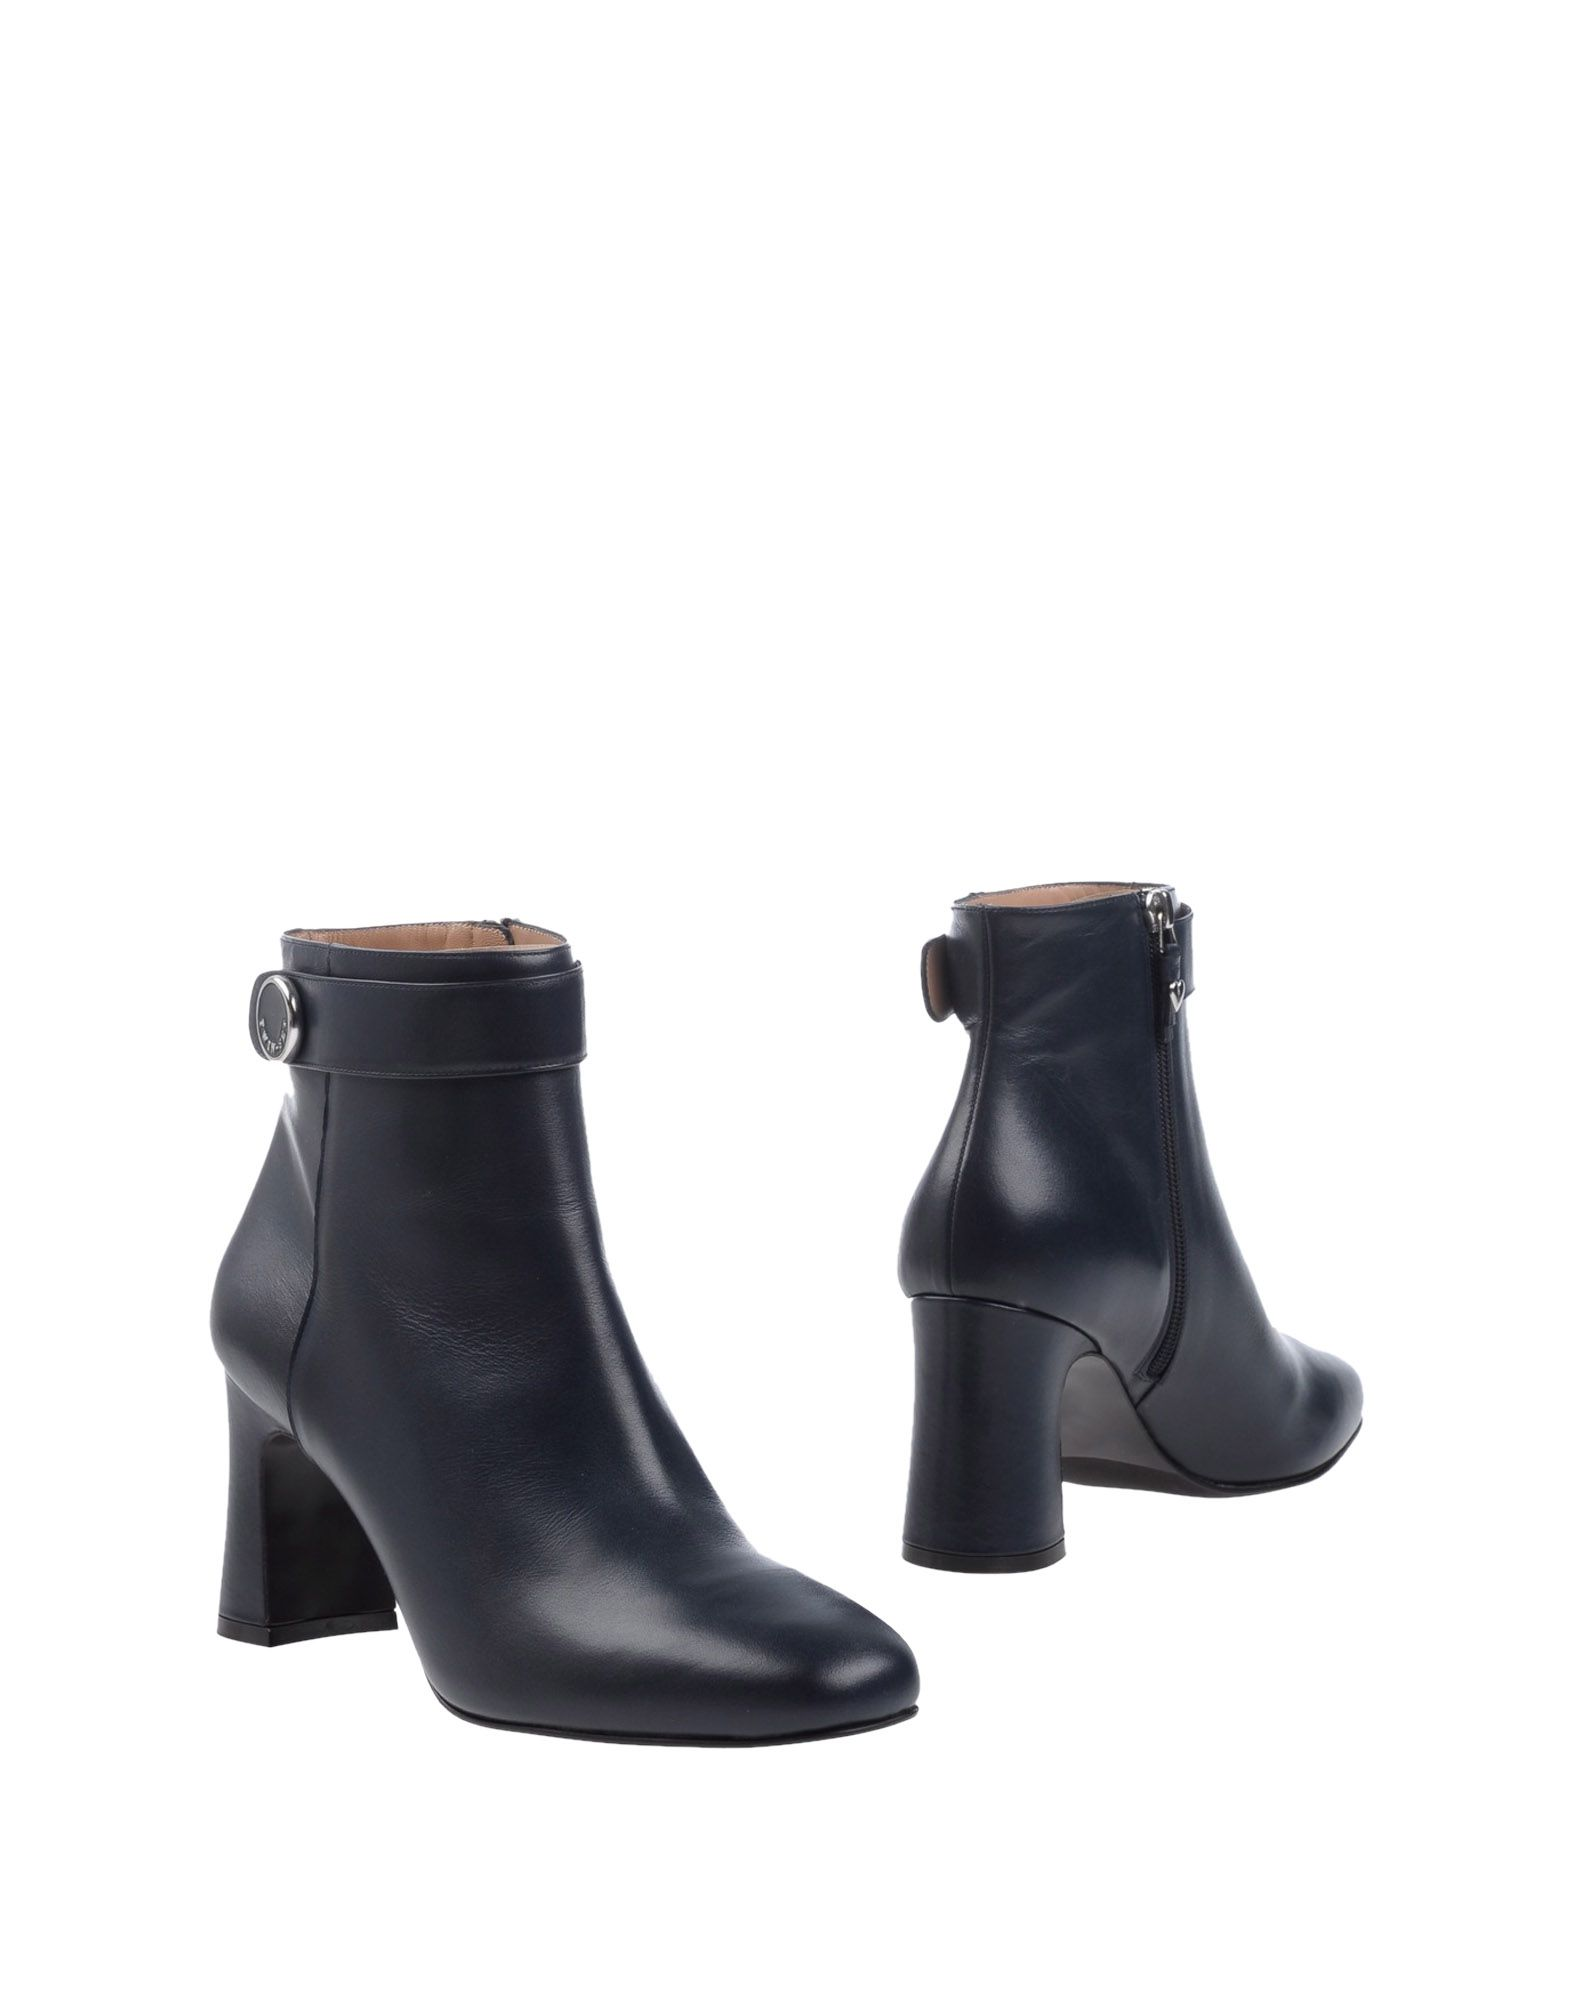 Twin-Set Simona Barbieri Ankle Boot - Women Twin-Set Simona Barbieri  Ankle Boots online on  Barbieri United Kingdom - 11277412WF 828ba4